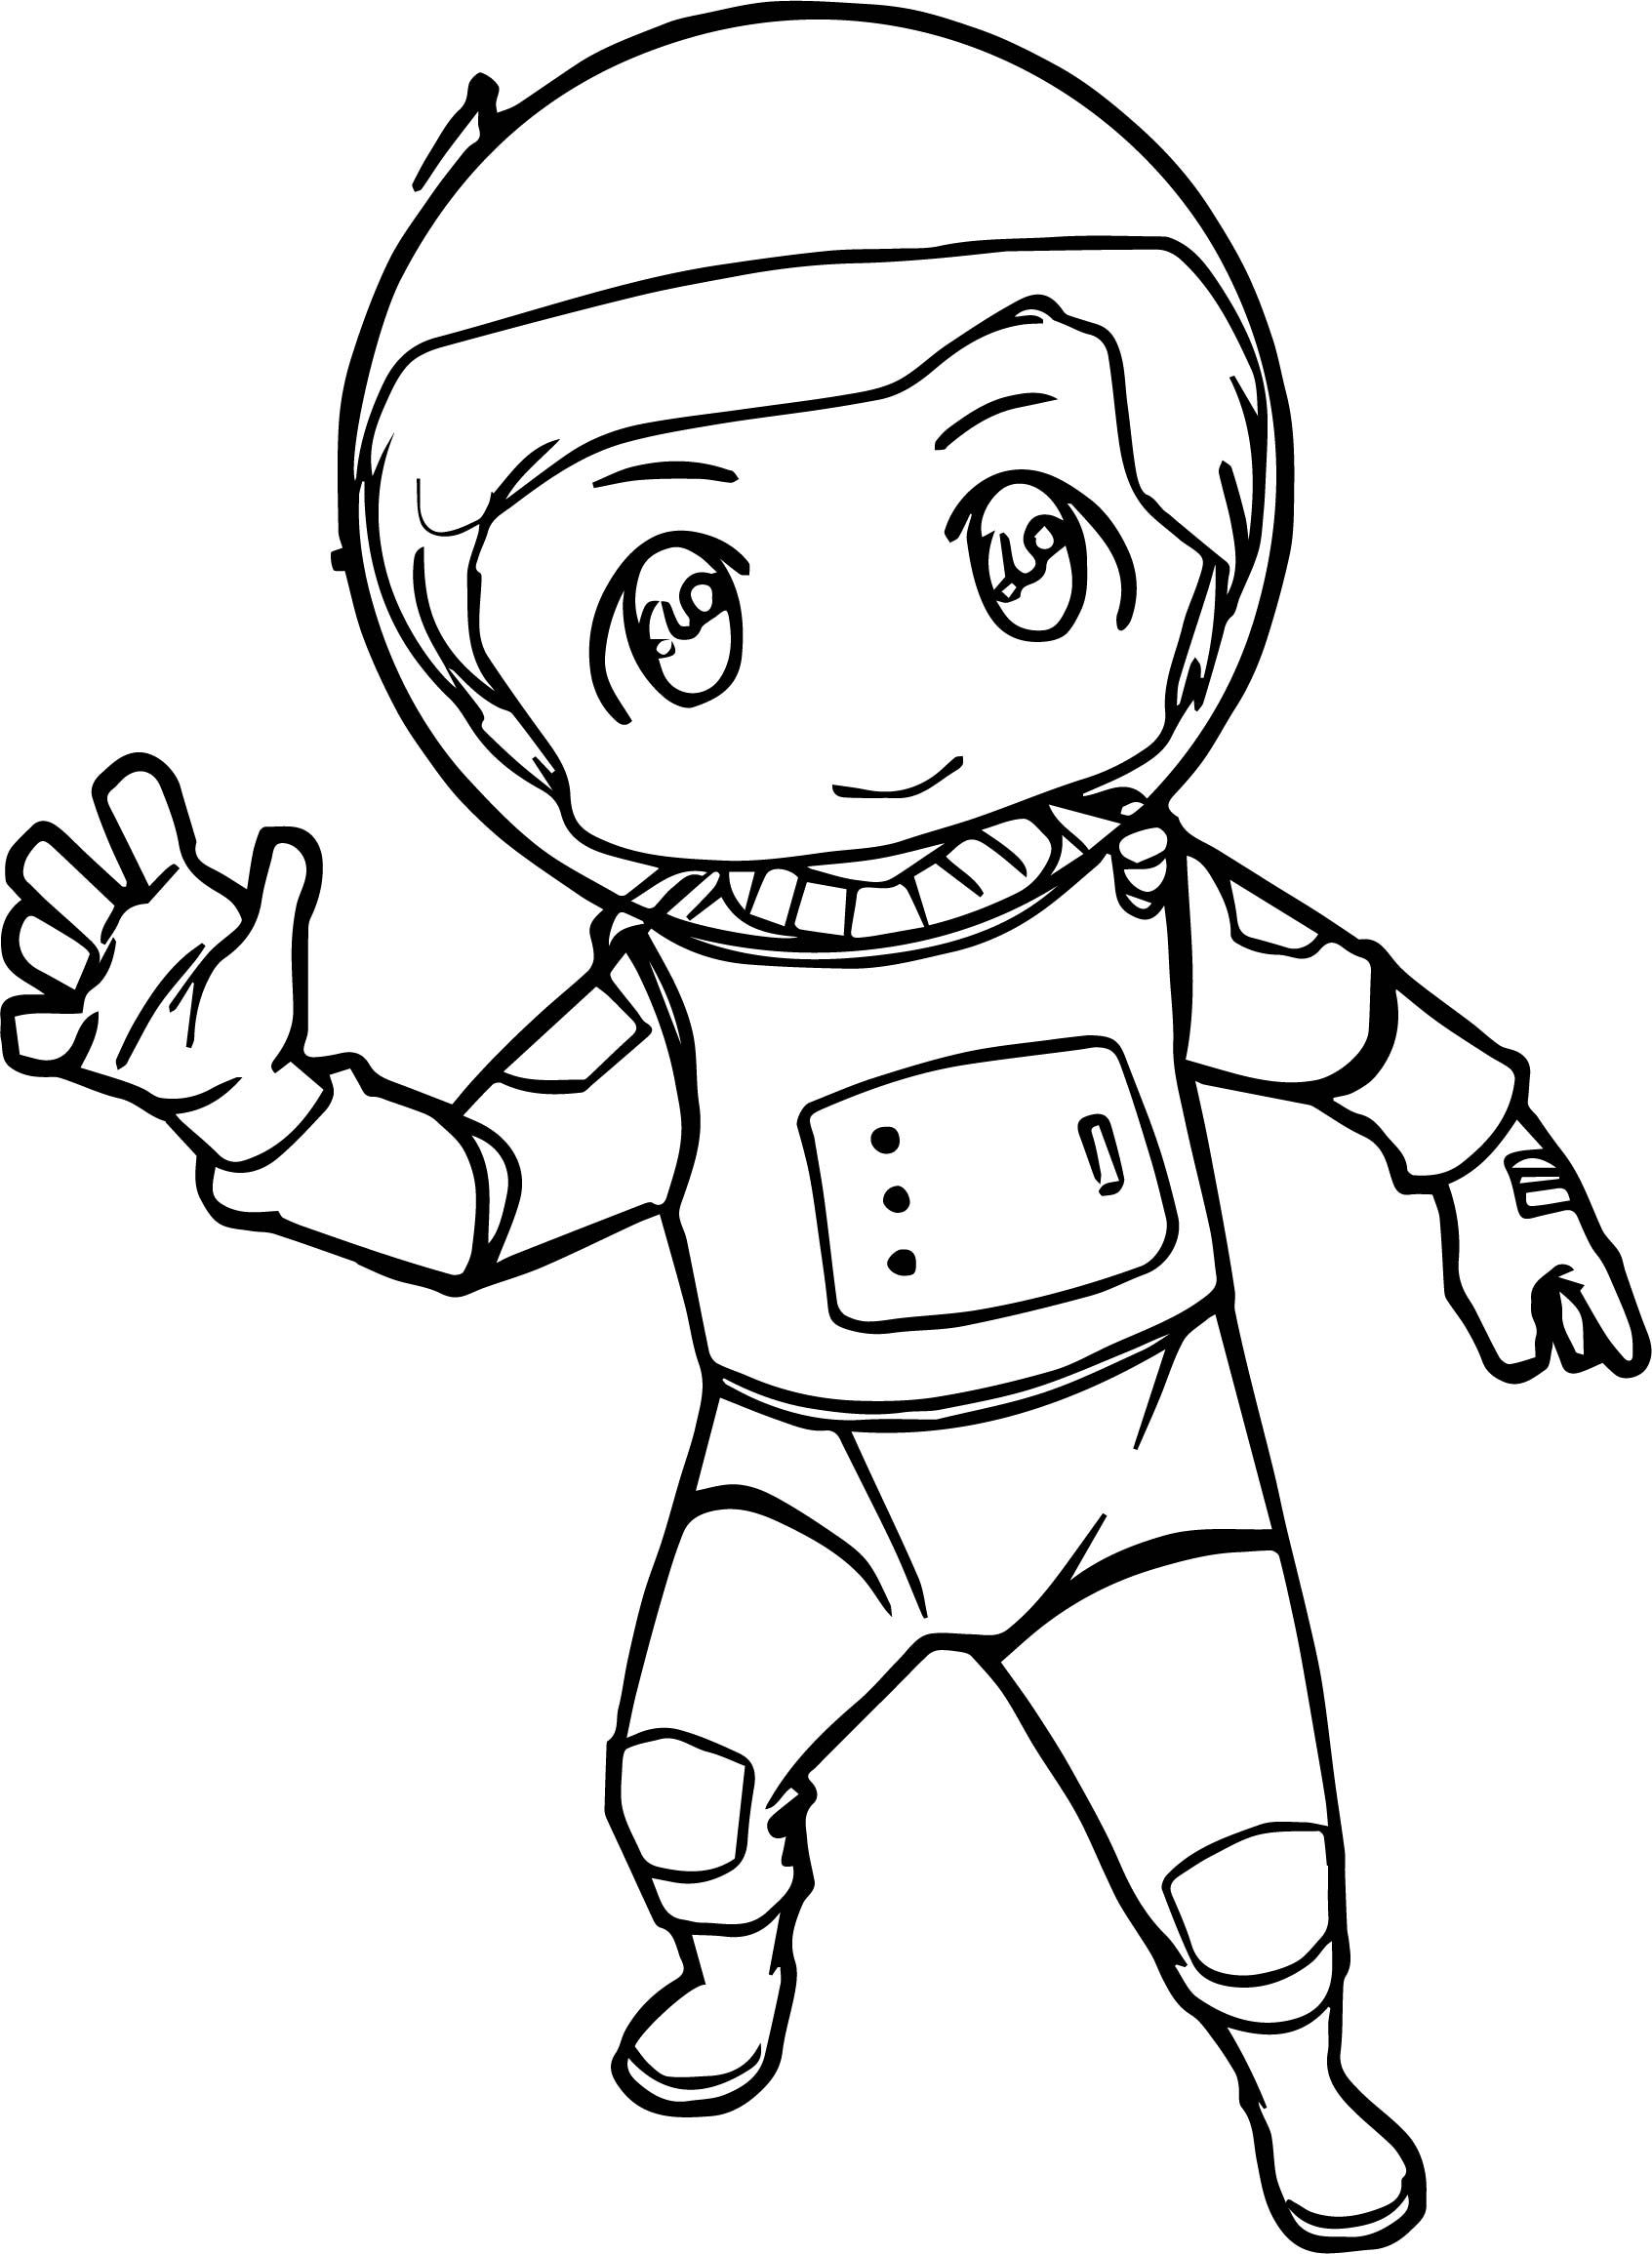 astronaut coloring for kids printable astronaut coloring pages for kids for kids astronaut coloring